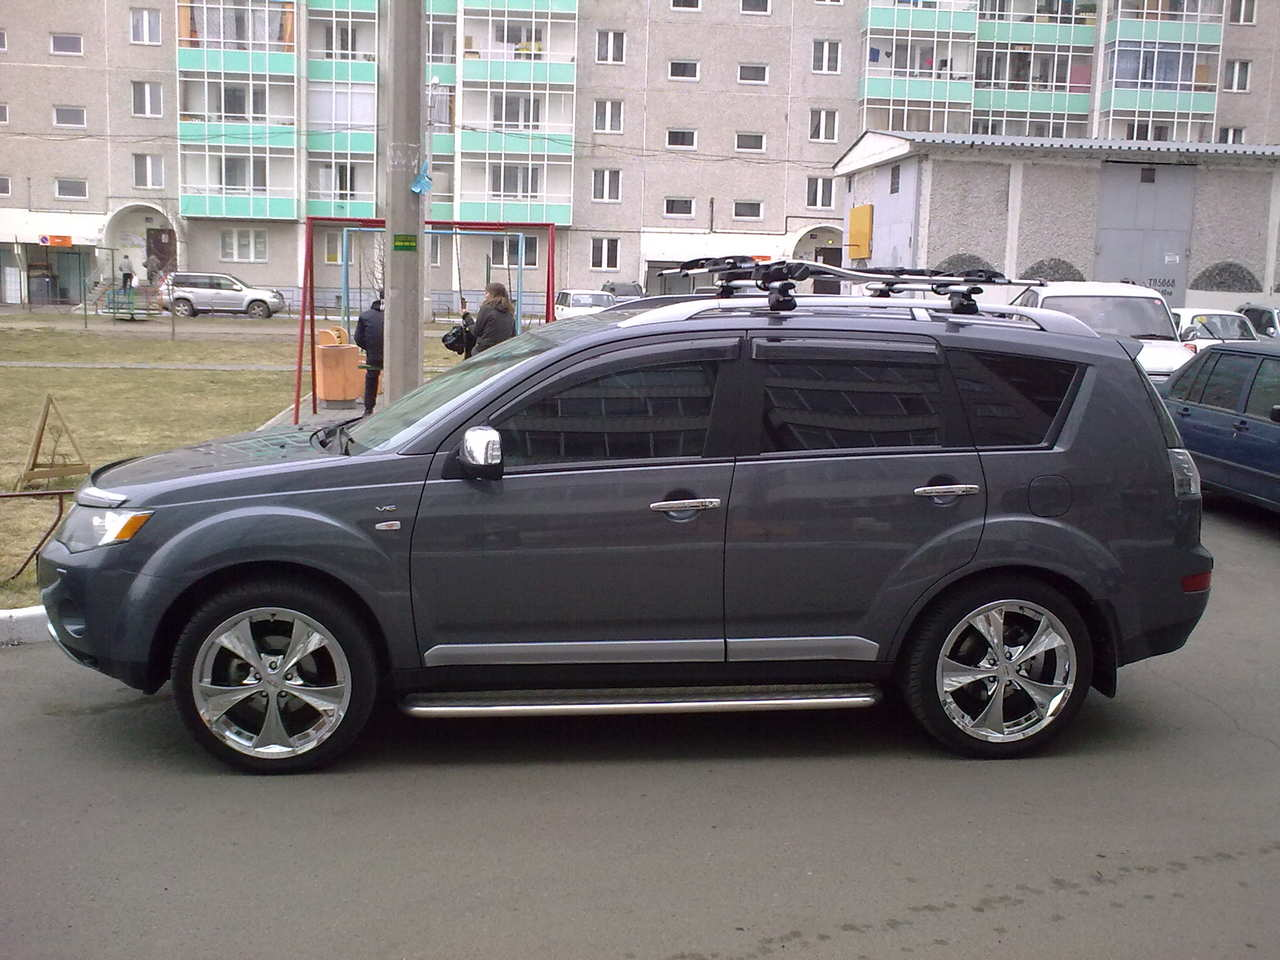 used 2008 mitsubishi outlander photos 3000cc gasoline automatic for sale. Black Bedroom Furniture Sets. Home Design Ideas